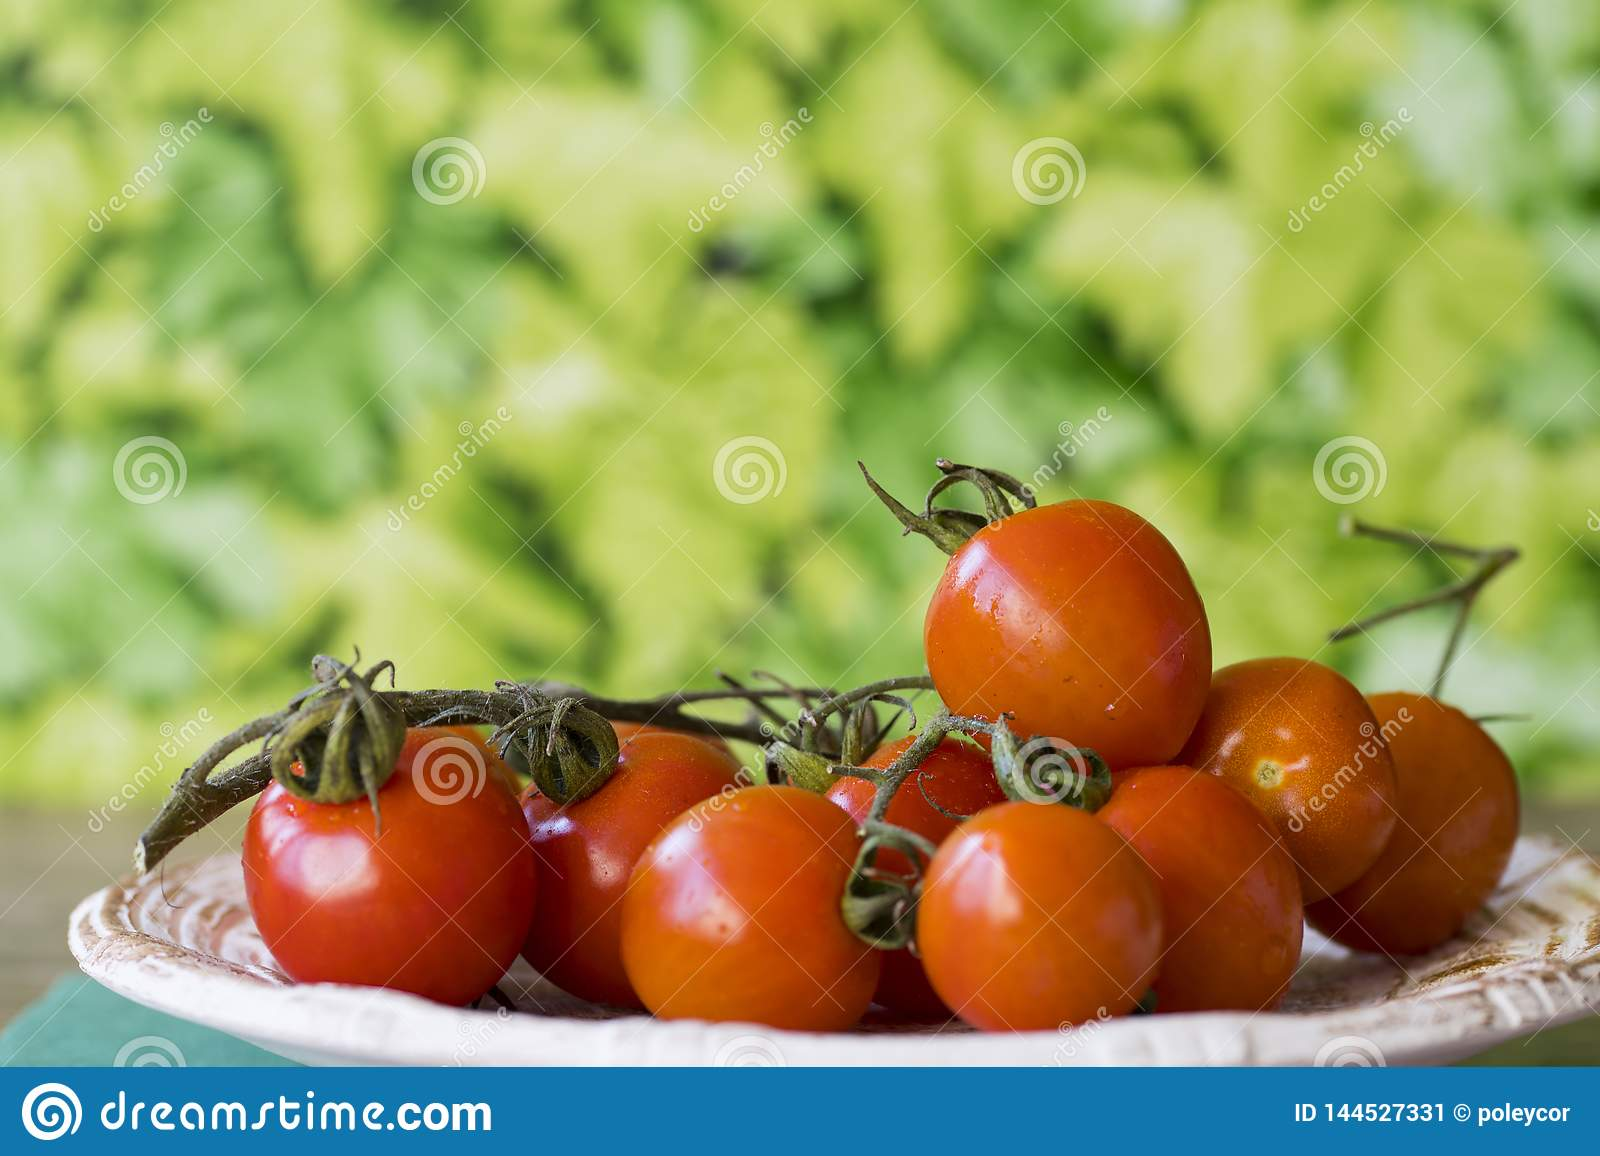 Fresh red cherry or ramano tomatoes on white plate in garden, against green leaf background. Space for text